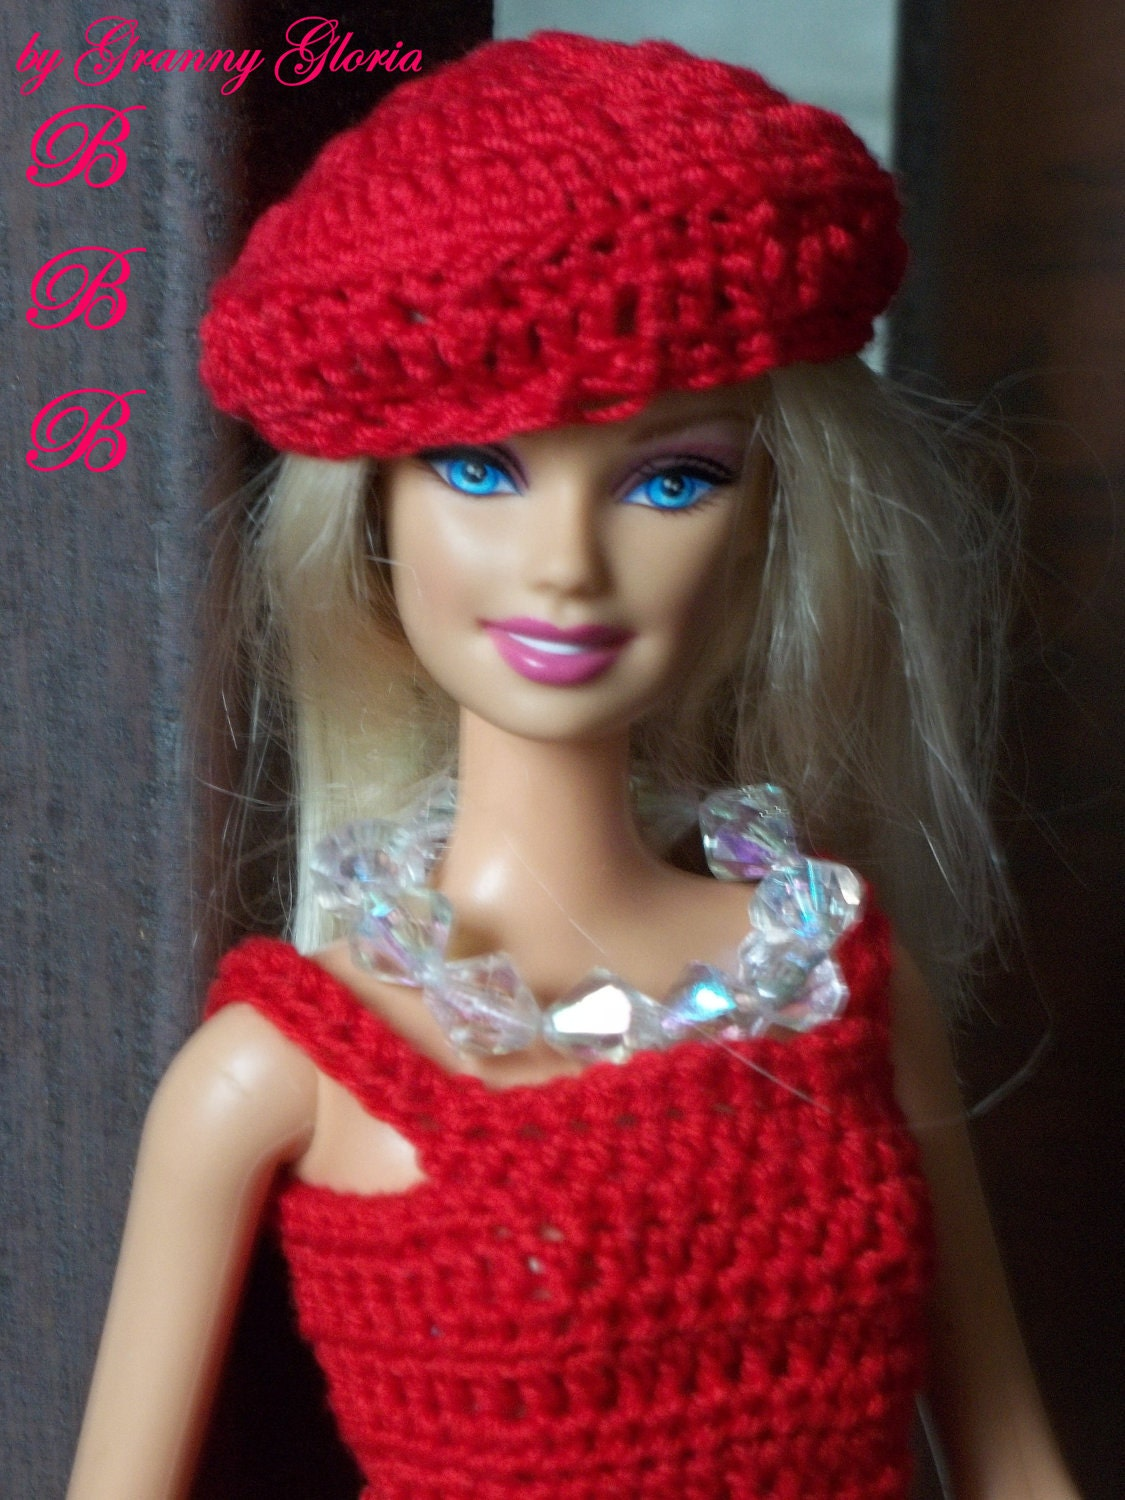 Amazon.com: Crochet for Barbie Doll: 75 Delightful Creations to